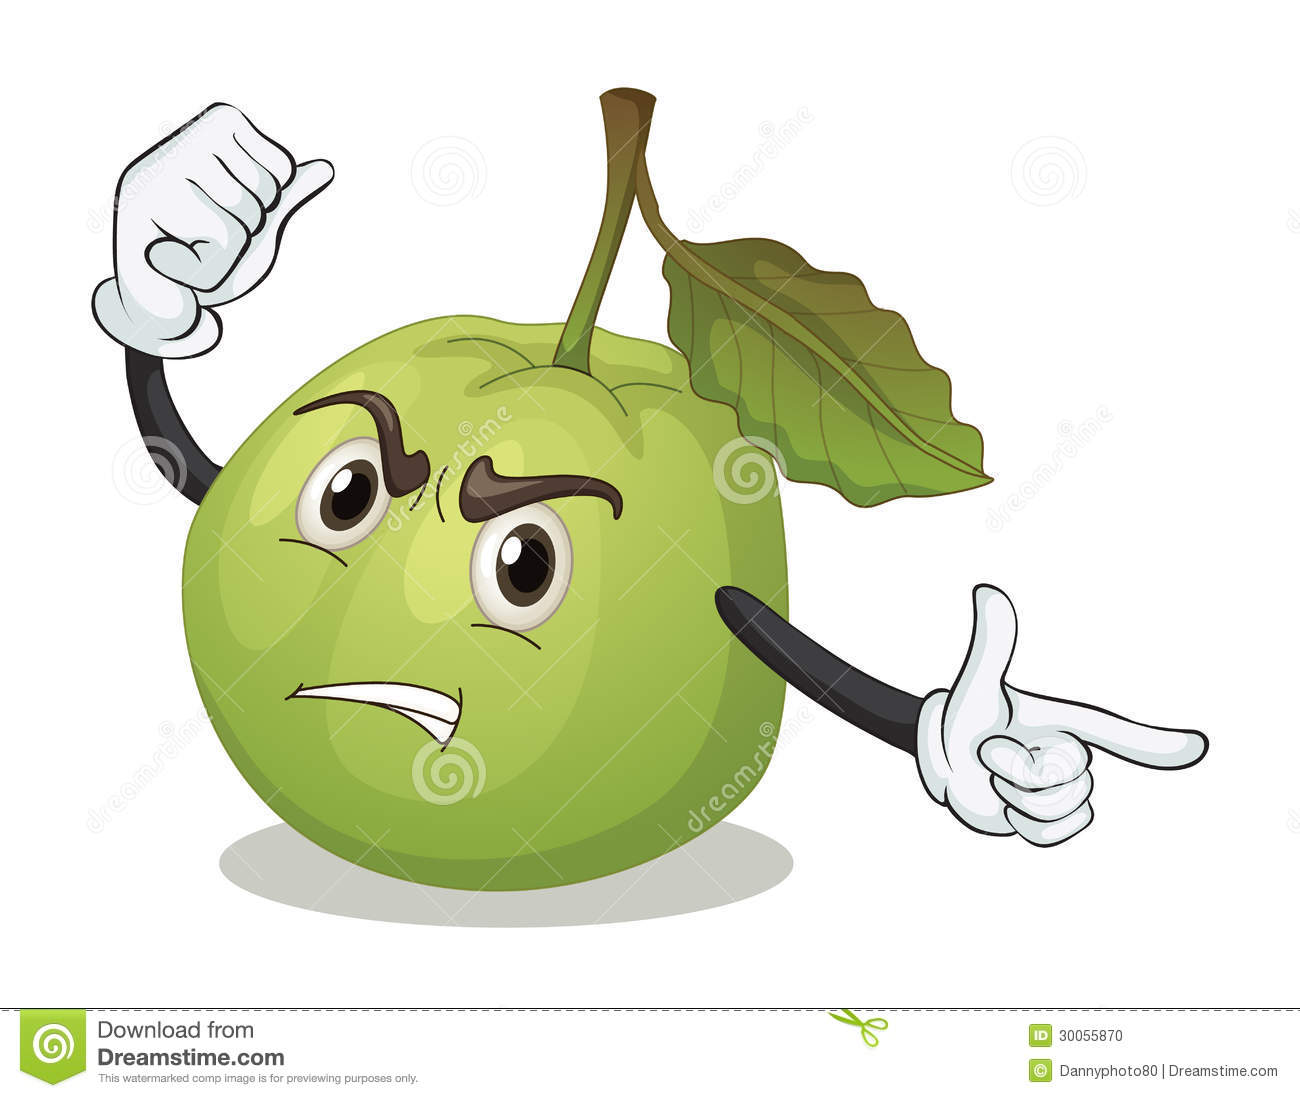 delicious green apple illustration - photo #38